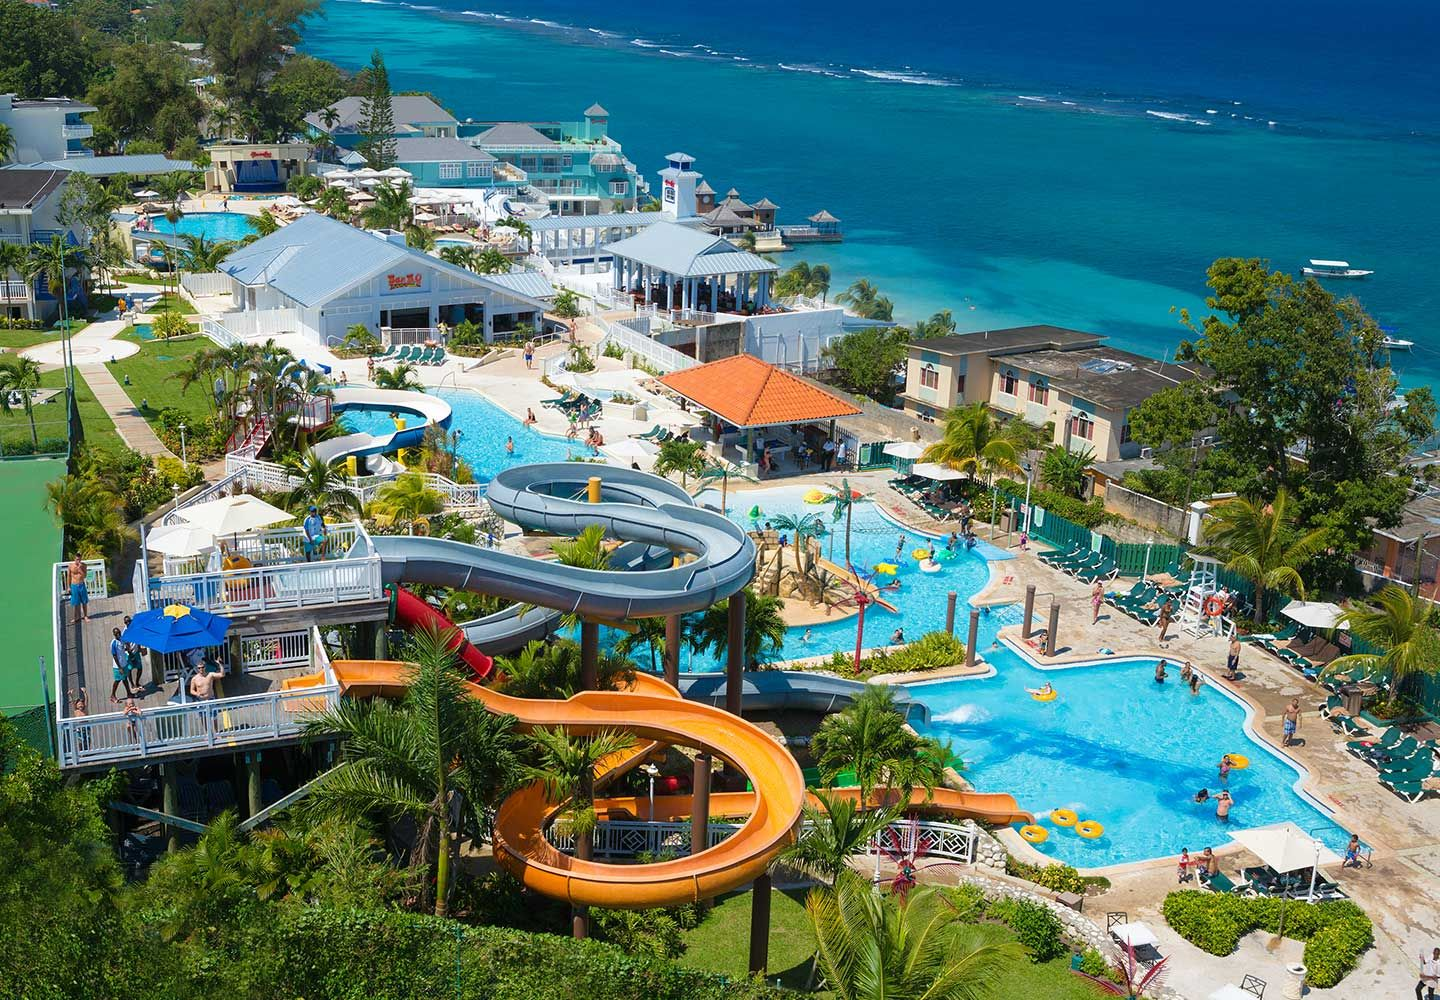 5 Best AllInclusive Resorts for Families in the Caribbean